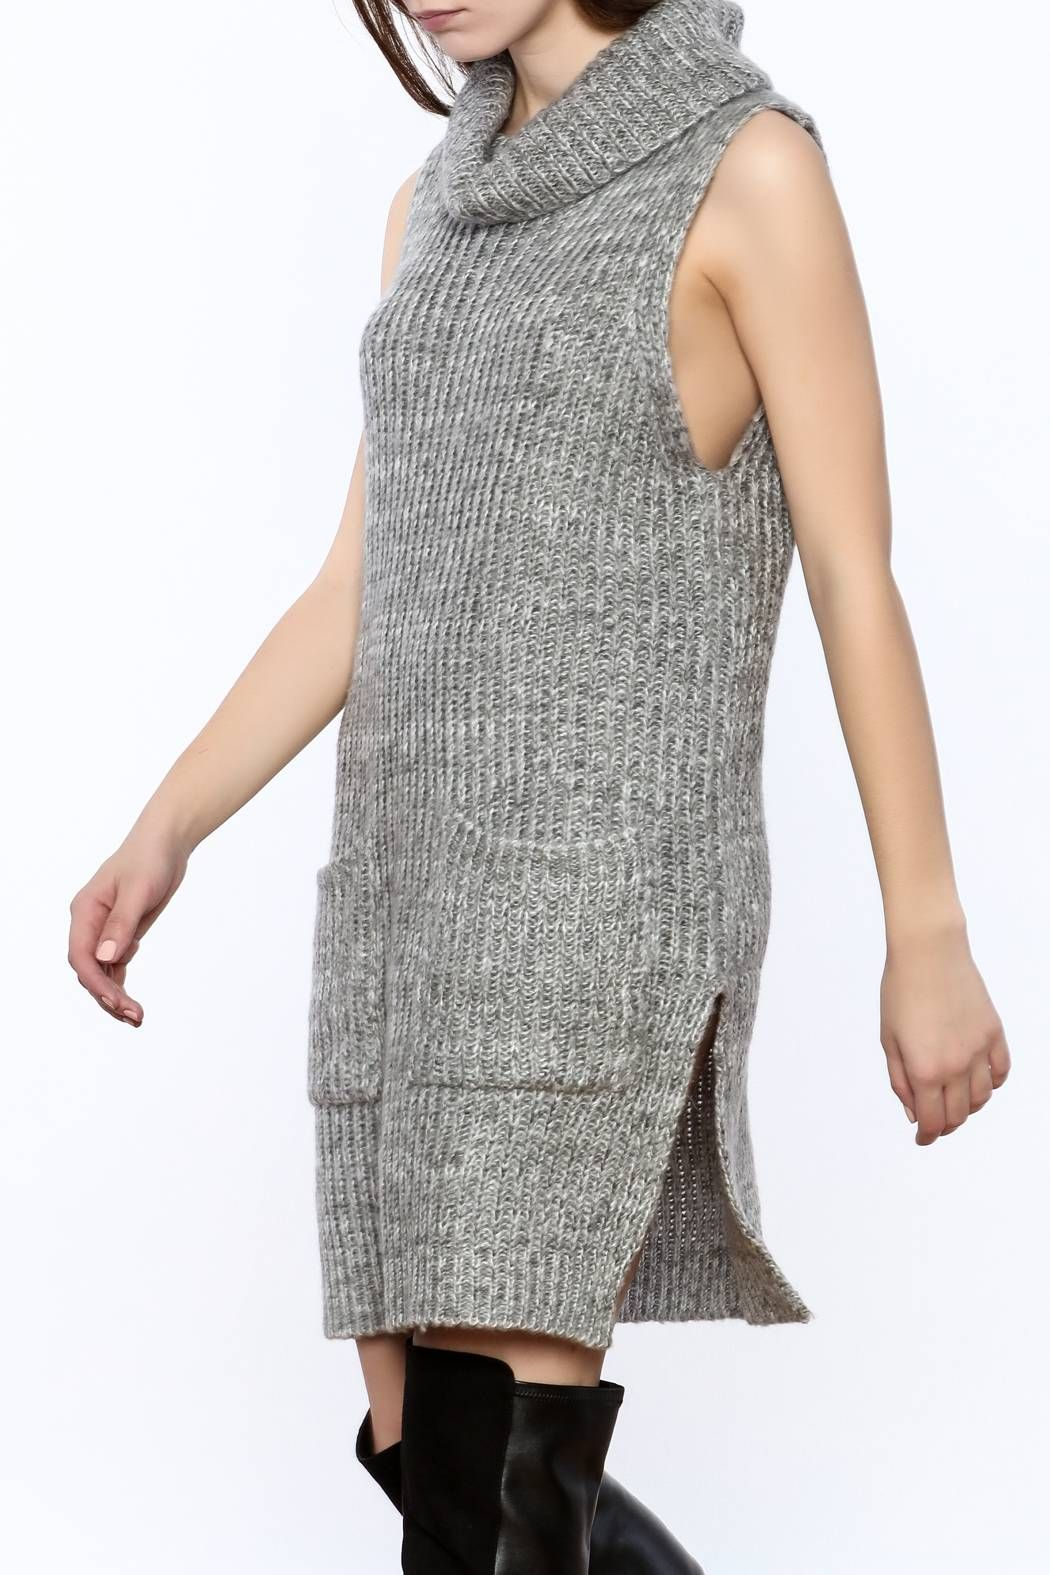 6eac2ffa91d79 Heather grey sleeveless turtleneck tunic sweater with two front pockets and  side slits. Sleeveless Turtleneck Sweater by Lush. Clothing - Sweaters ...